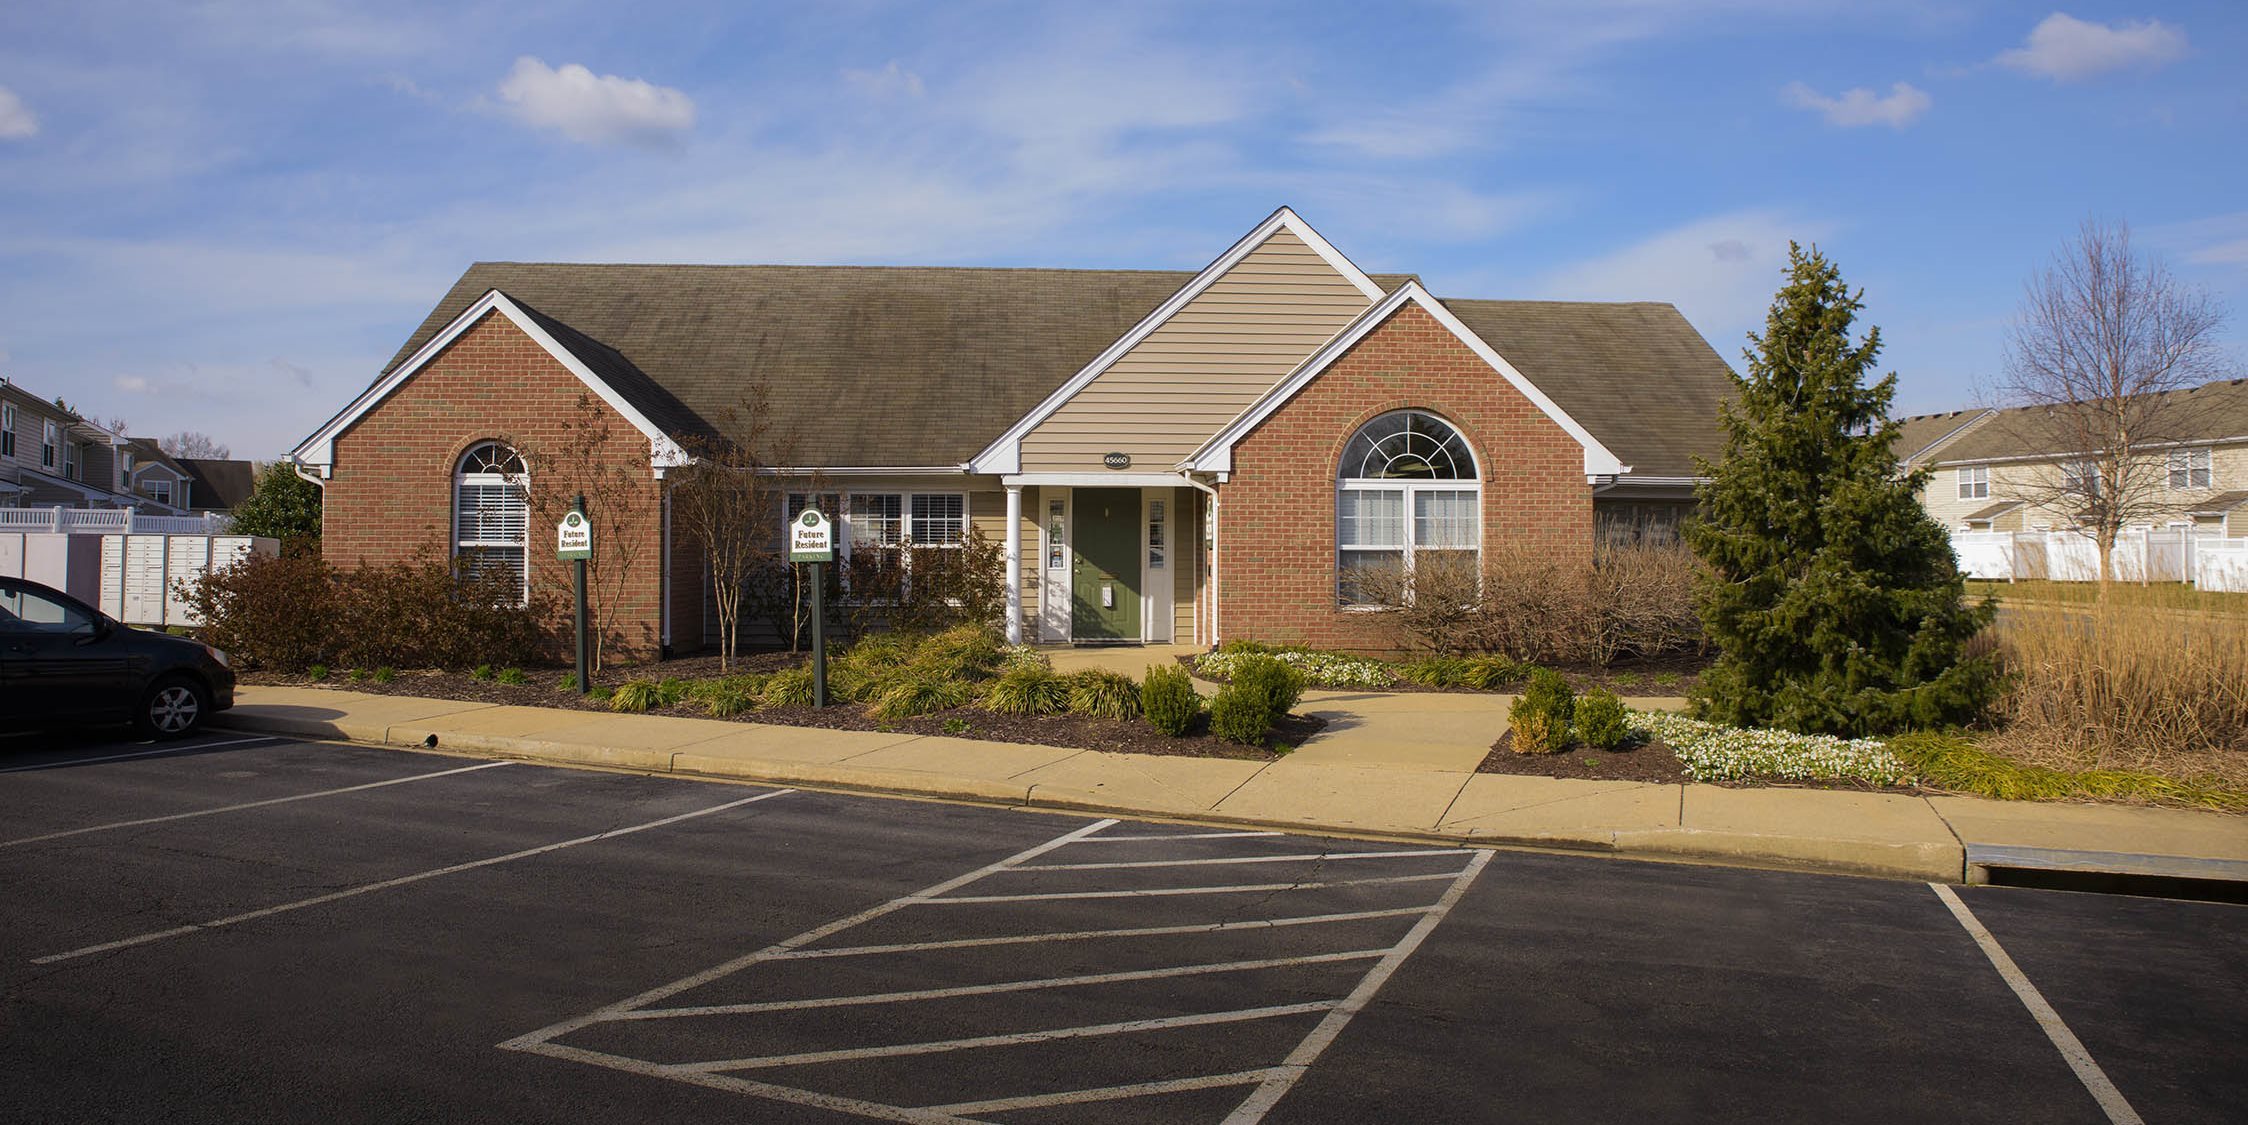 Villas at Greenview West   Townhomes near California, MD